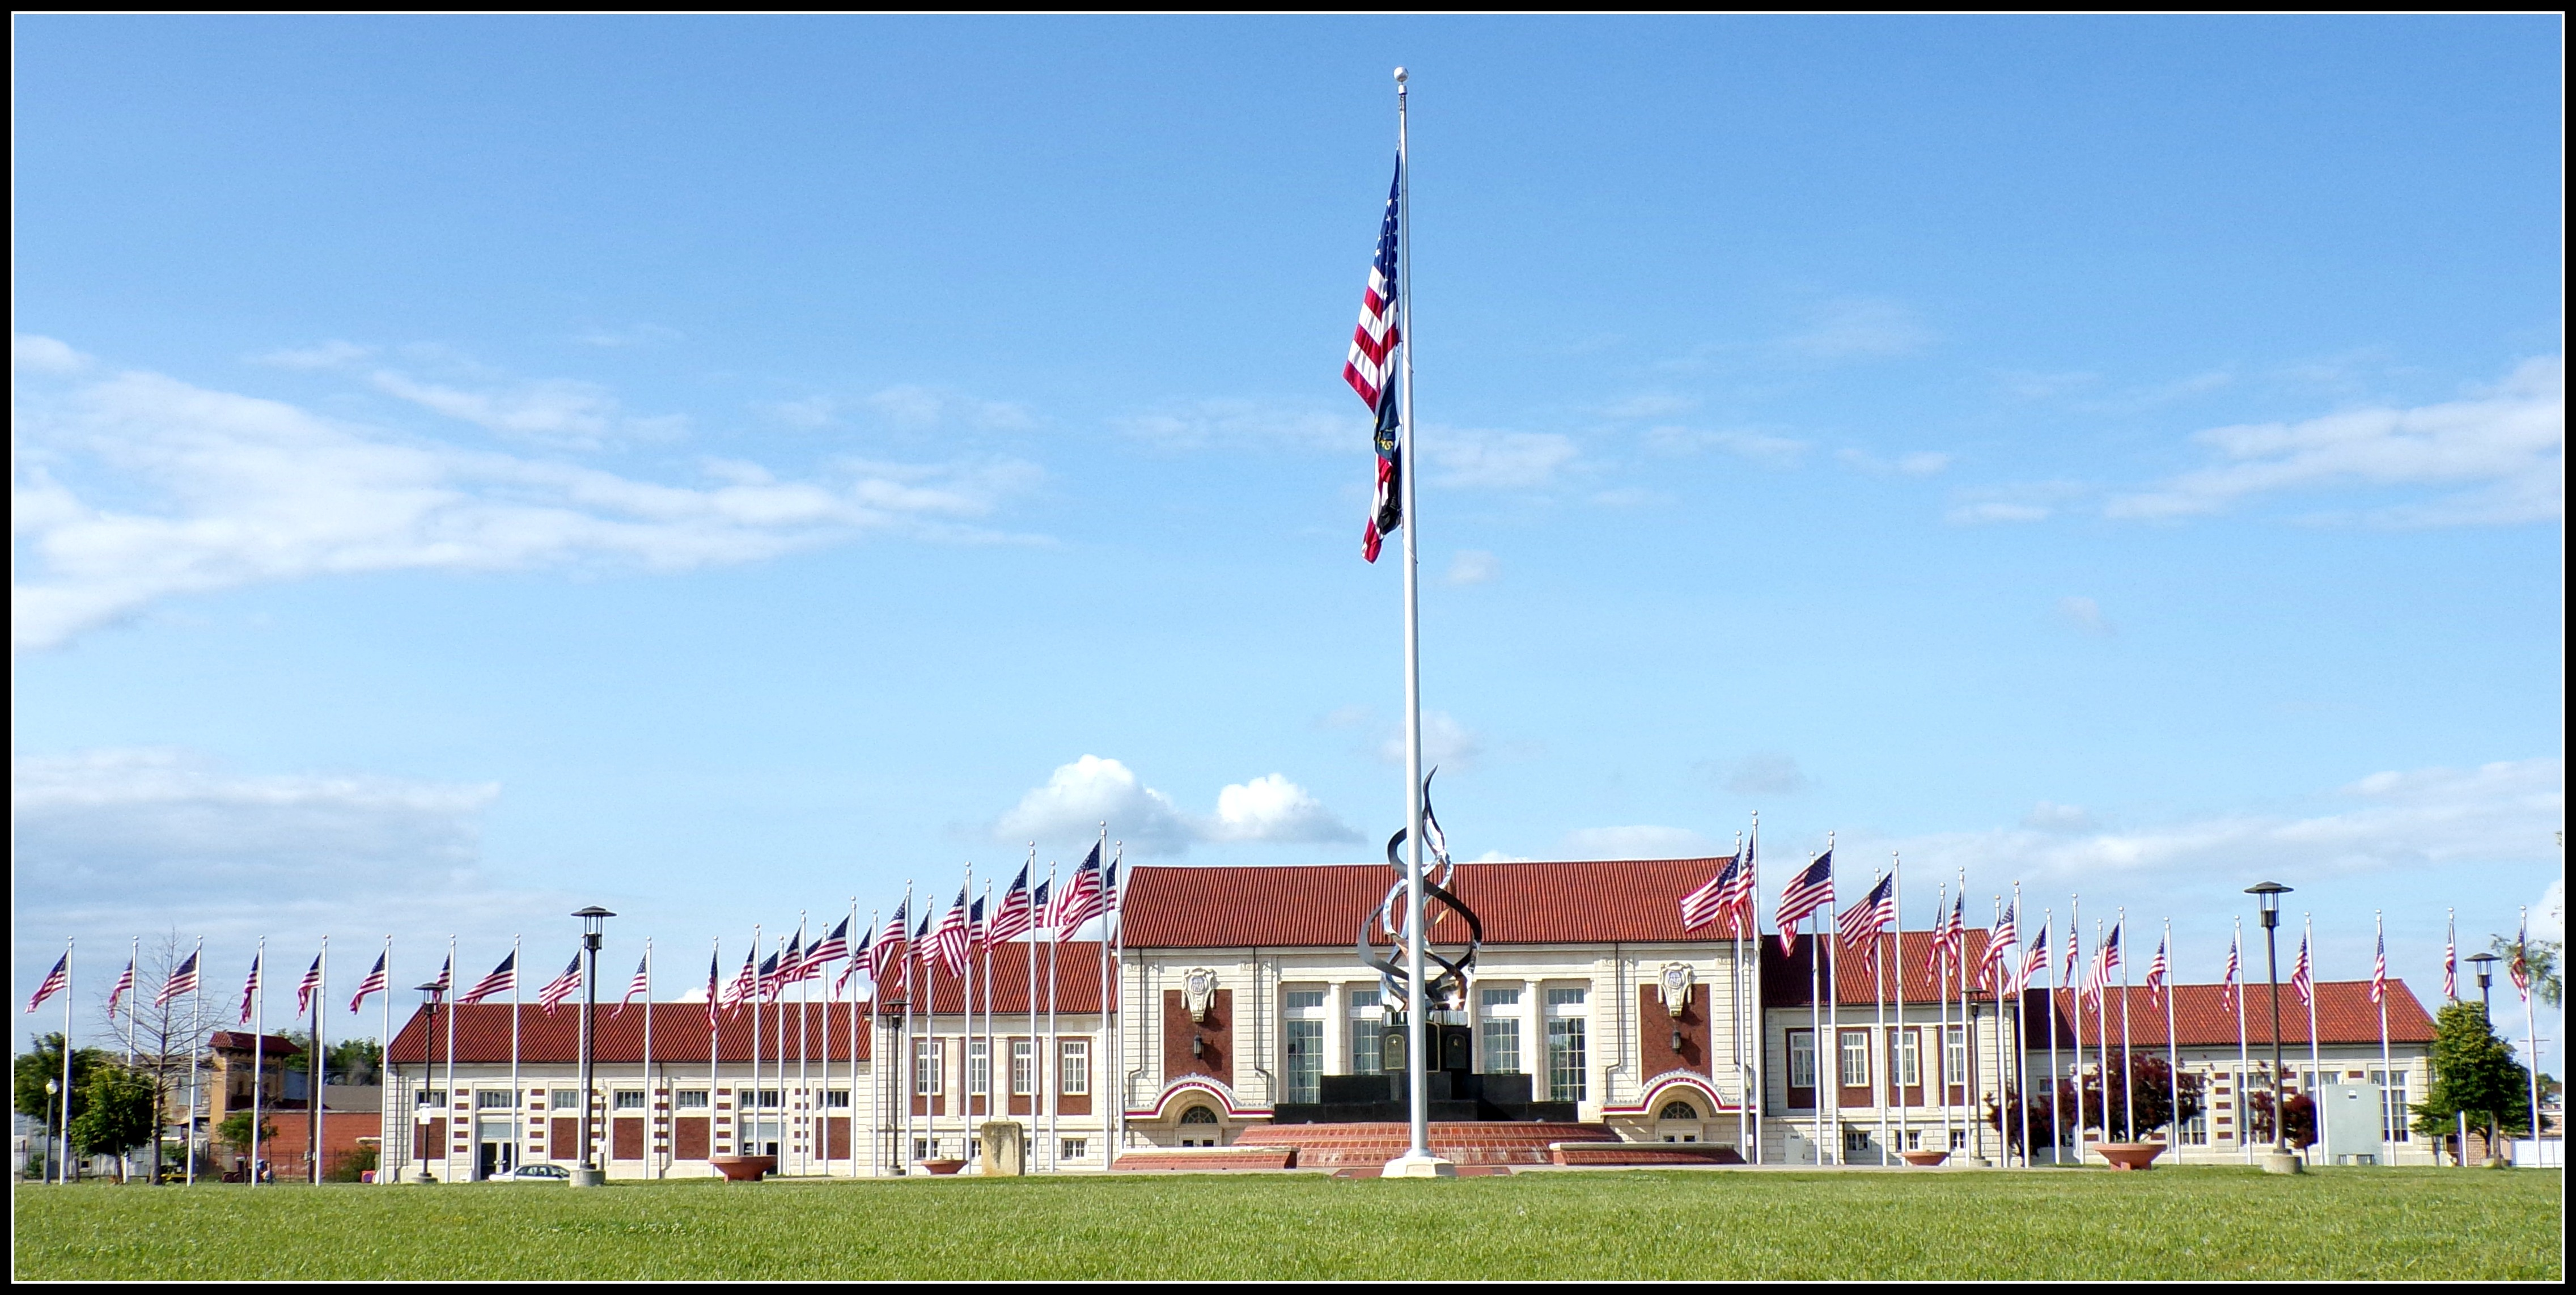 The great overland station in topeka ks